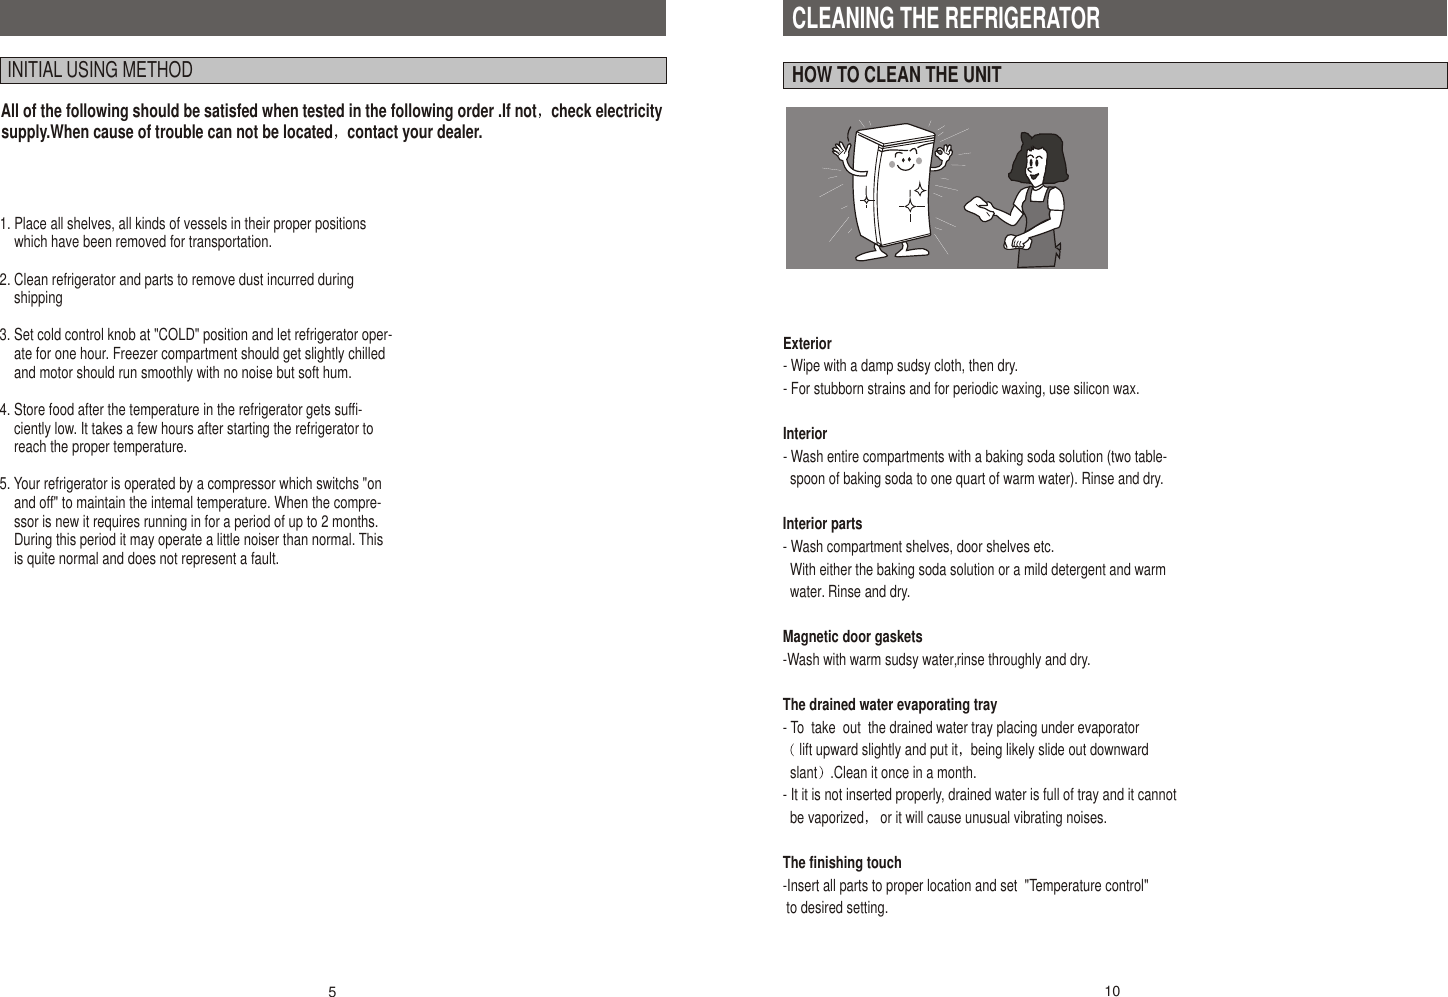 Samsung srg 118 users manual core118 page 6 of 9 samsung samsung srg 118 users manual fandeluxe Image collections